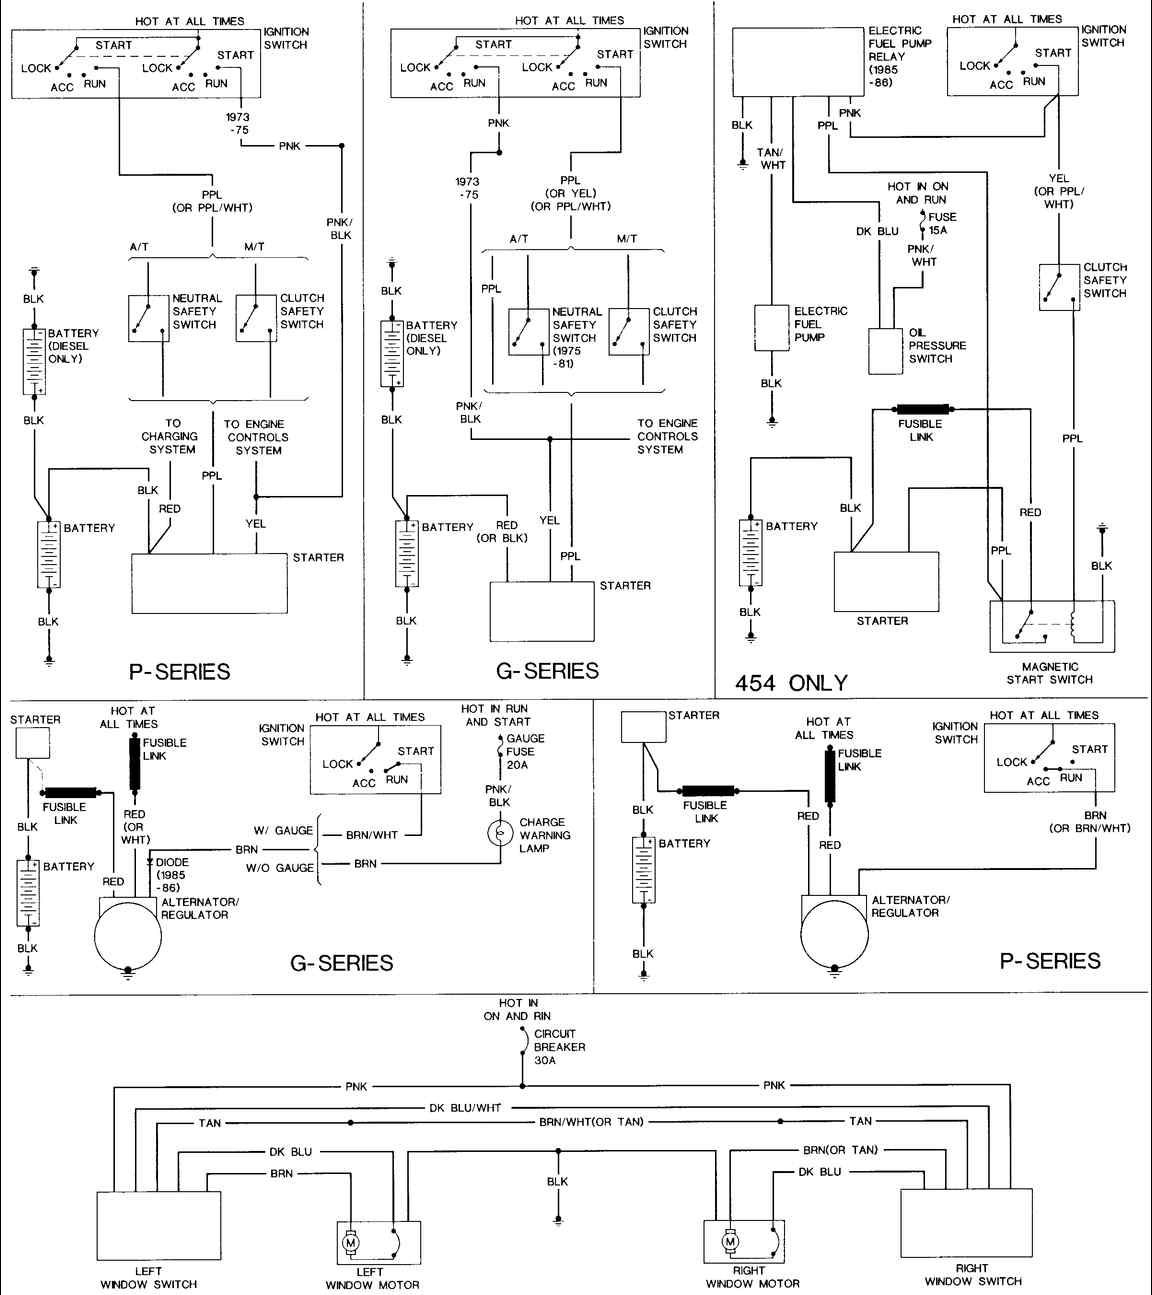 0c73623a181dc376dbb4777e2029d285 85 chevy truck wiring diagram 85 chevy van the steering column 12 Volt Solenoid Wiring Diagram at crackthecode.co